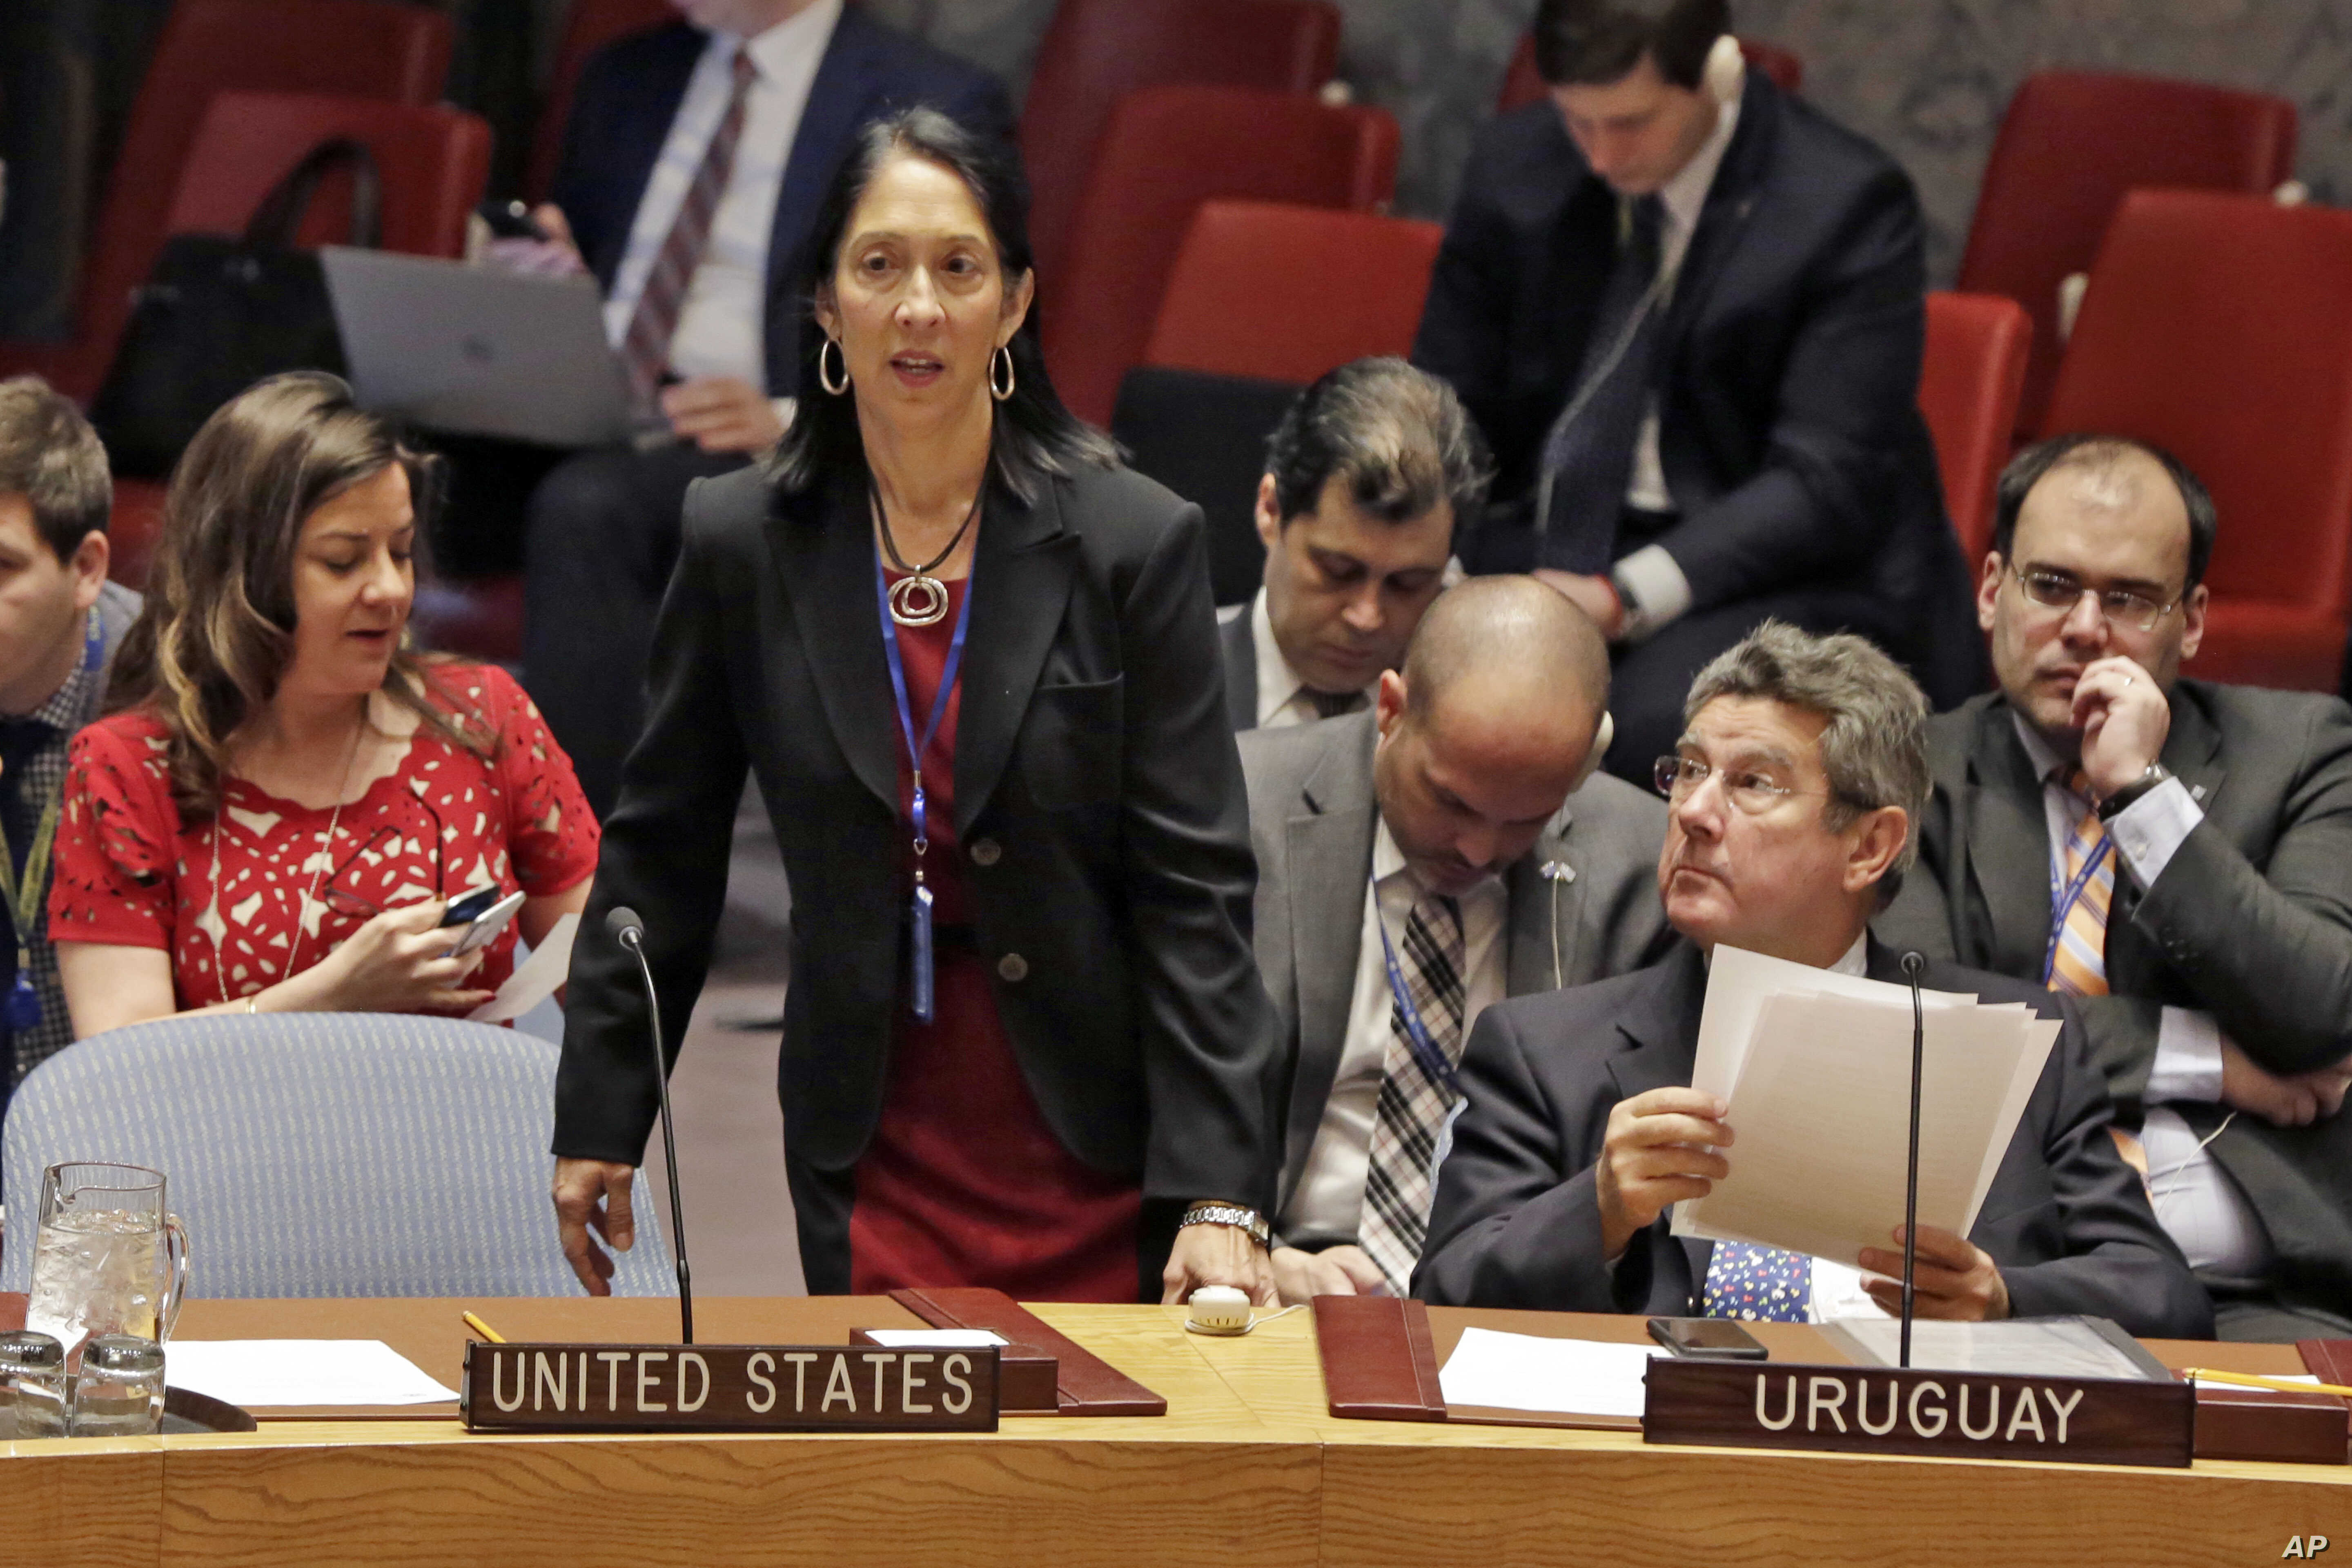 U.S. Deputy Permanent Representative to the U.N. Michele Sison arrives for the Security Council meeting of the United Nations, Feb. 2, 2017.